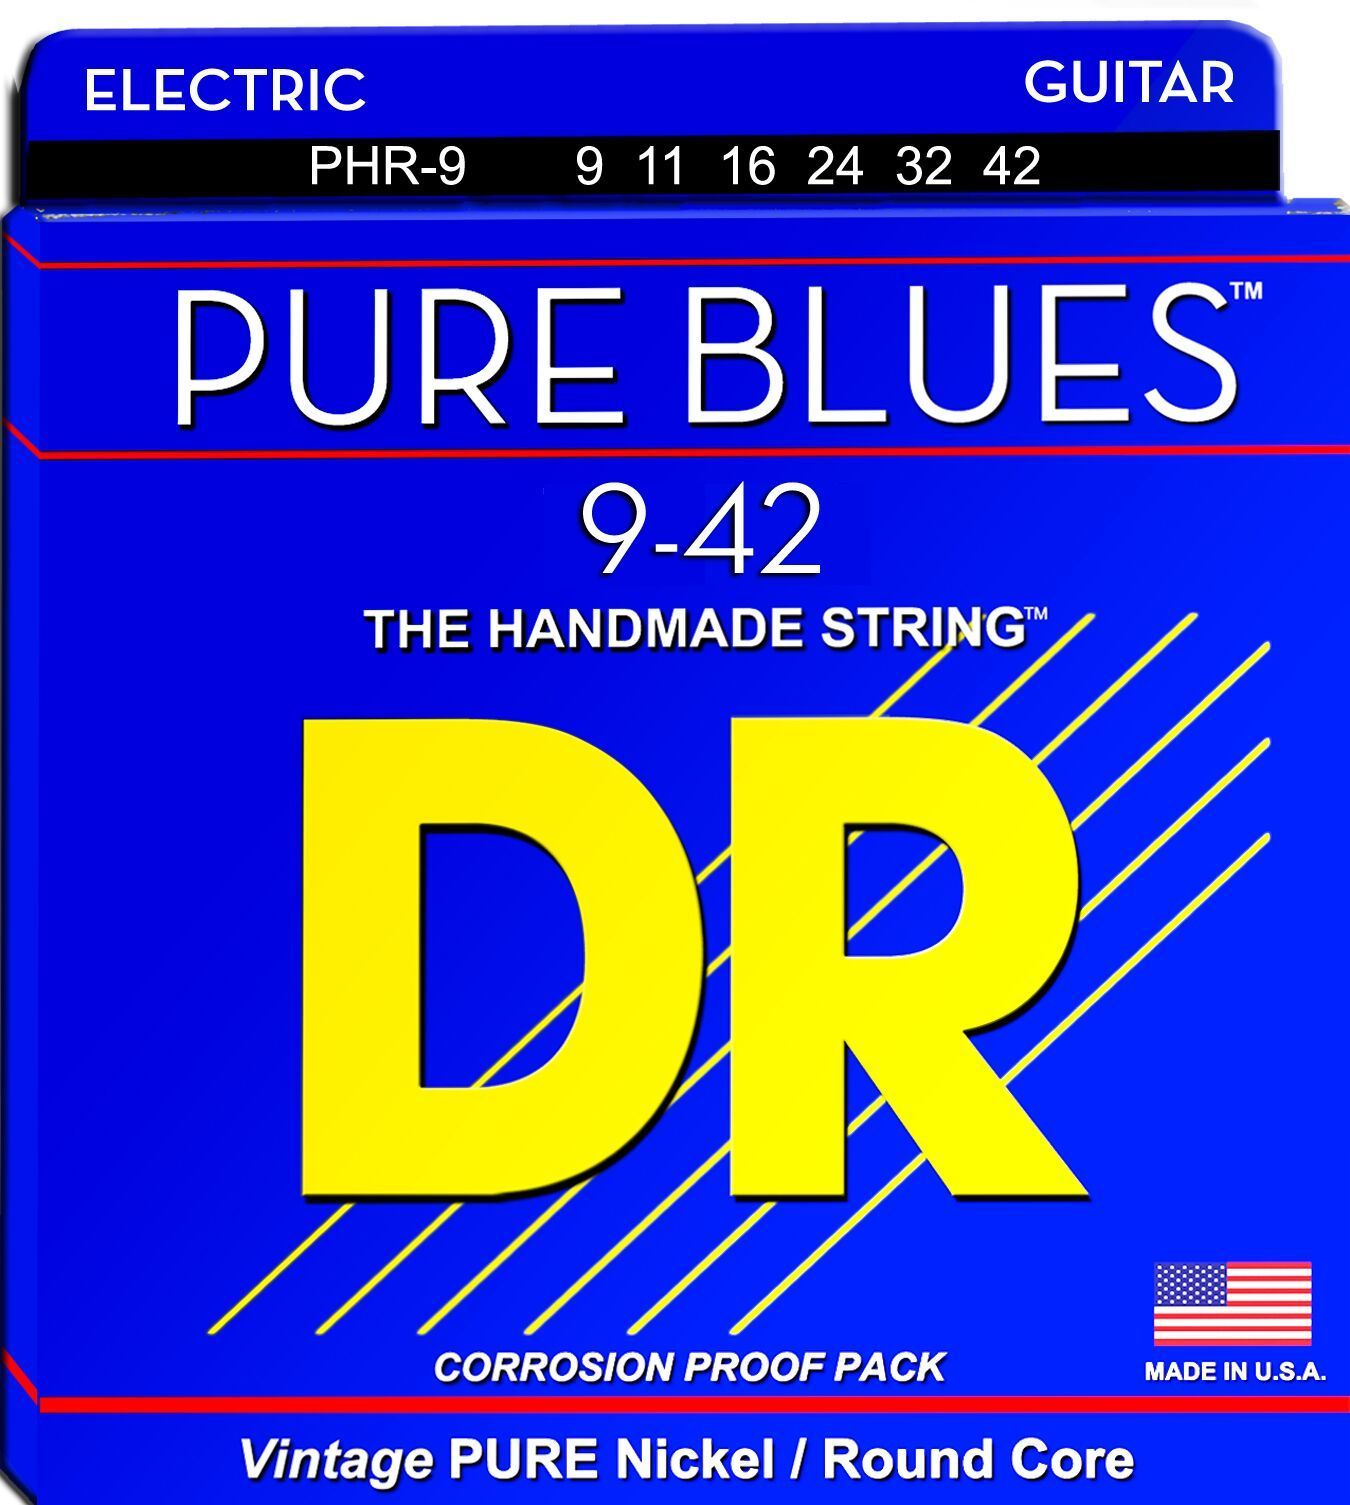 DR Strings PHR9 Pure Blues Electric Guitar Strings 9-42